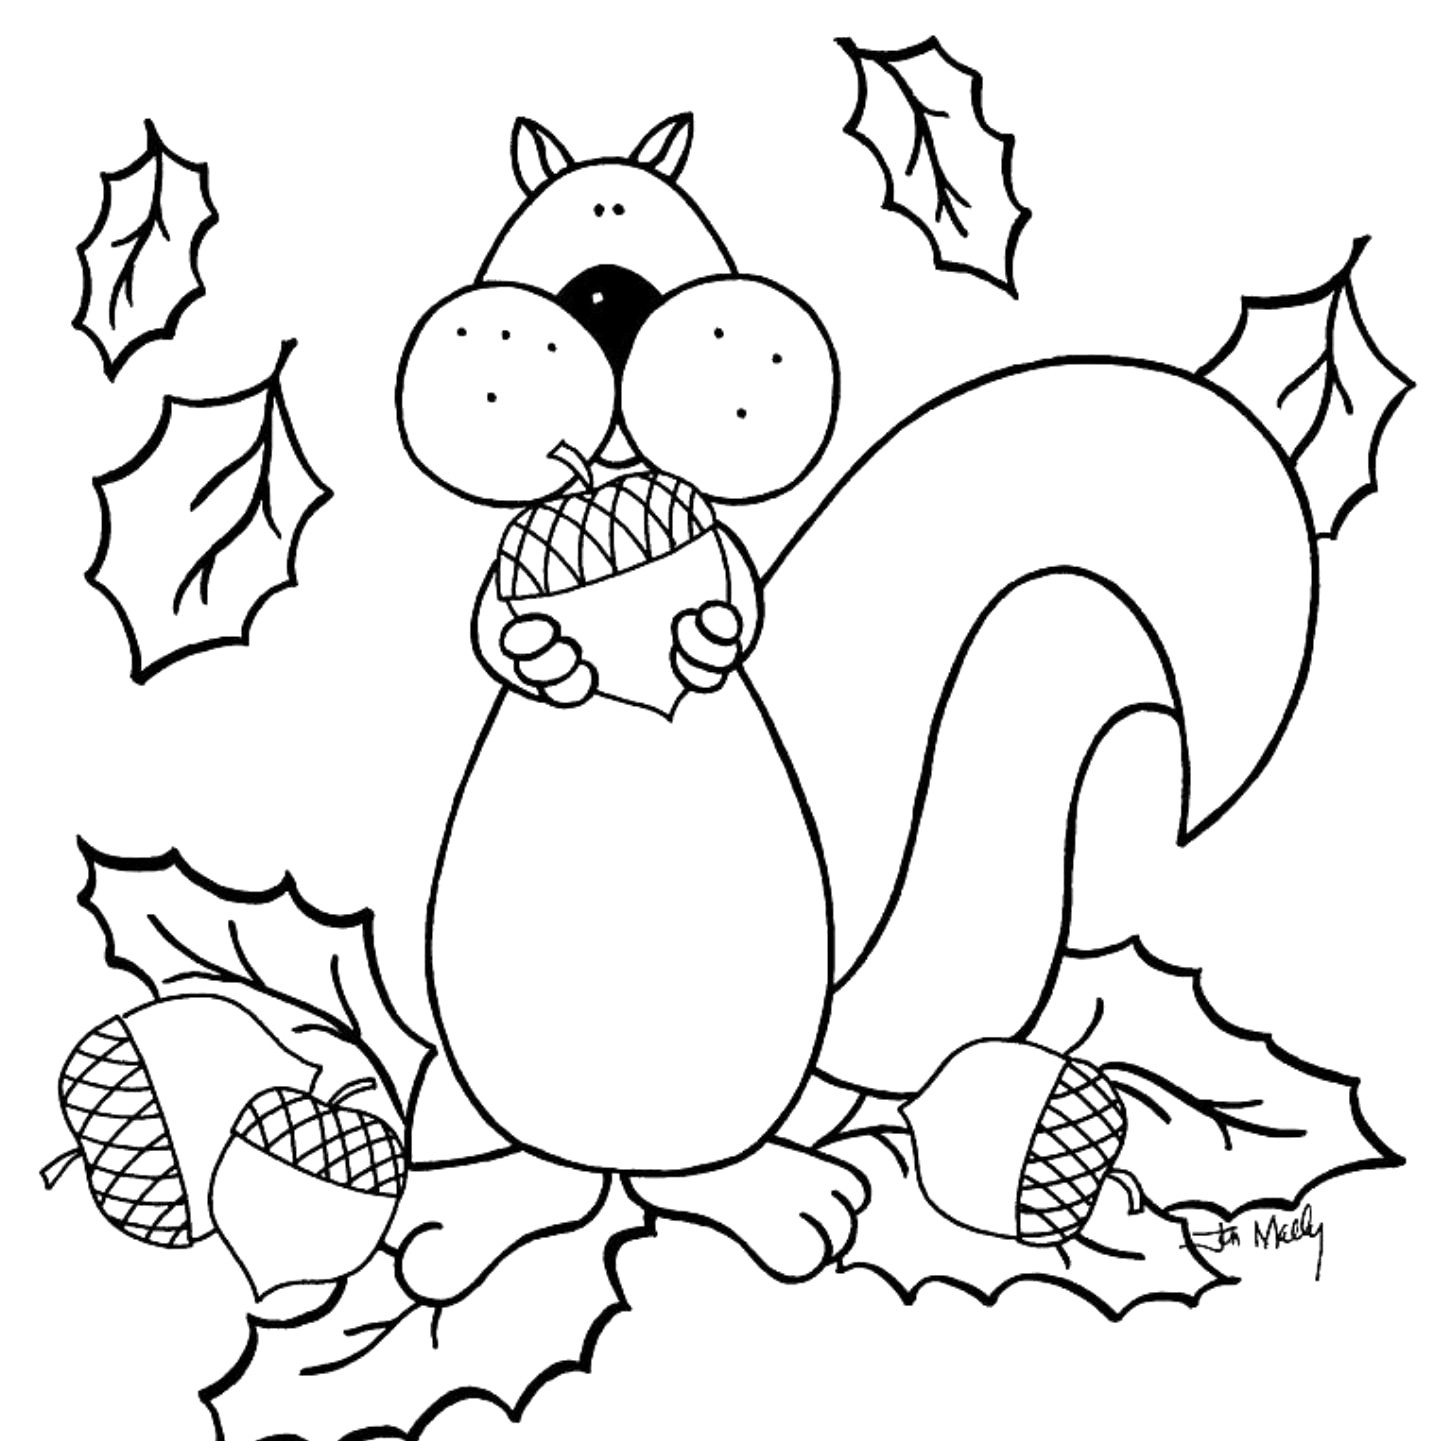 Free Printable Fall Coloring Pages For Kids - Best Coloring Pages - Free Printable Fall Coloring Pages